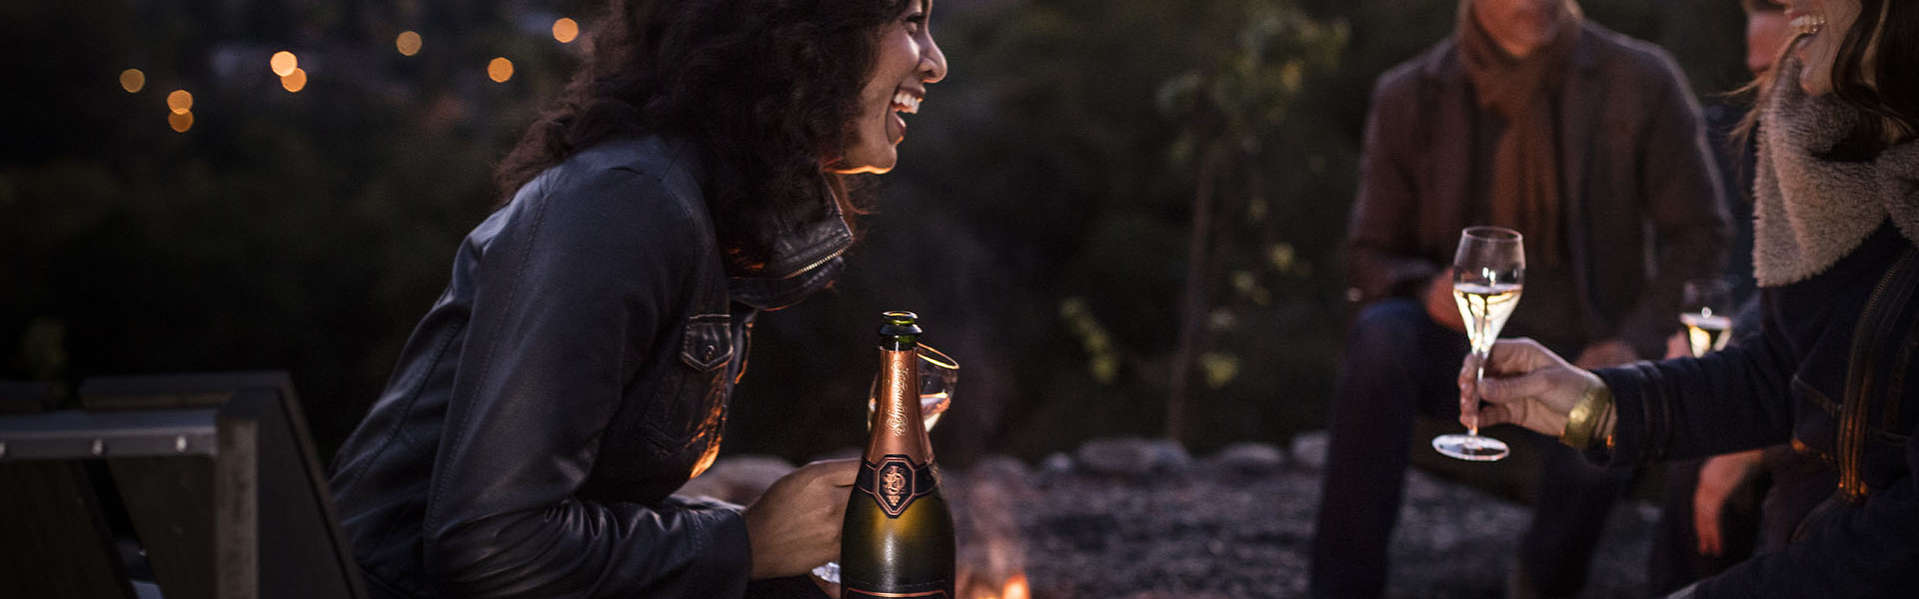 Woman laughing by a fire pit and enjoying Schramsberg sparkling wine